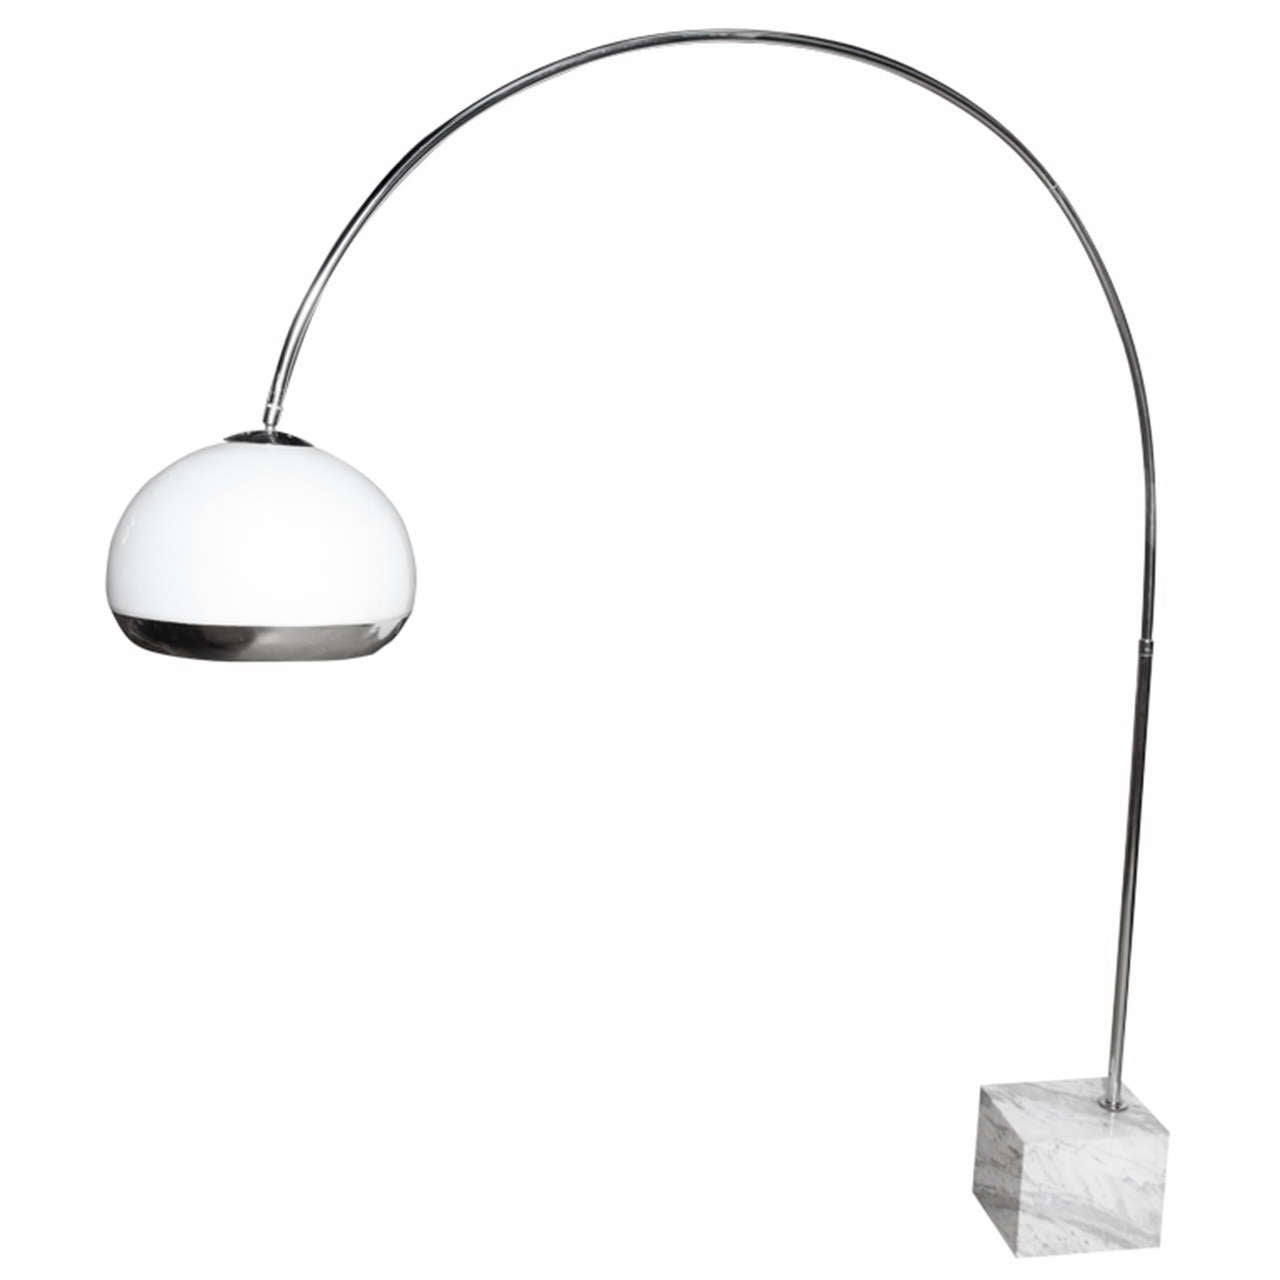 Harvey guzzini for laurel lighting co arc floor lamp at 1stdibs harvey guzzini for laurel lighting co arc floor lamp for sale mozeypictures